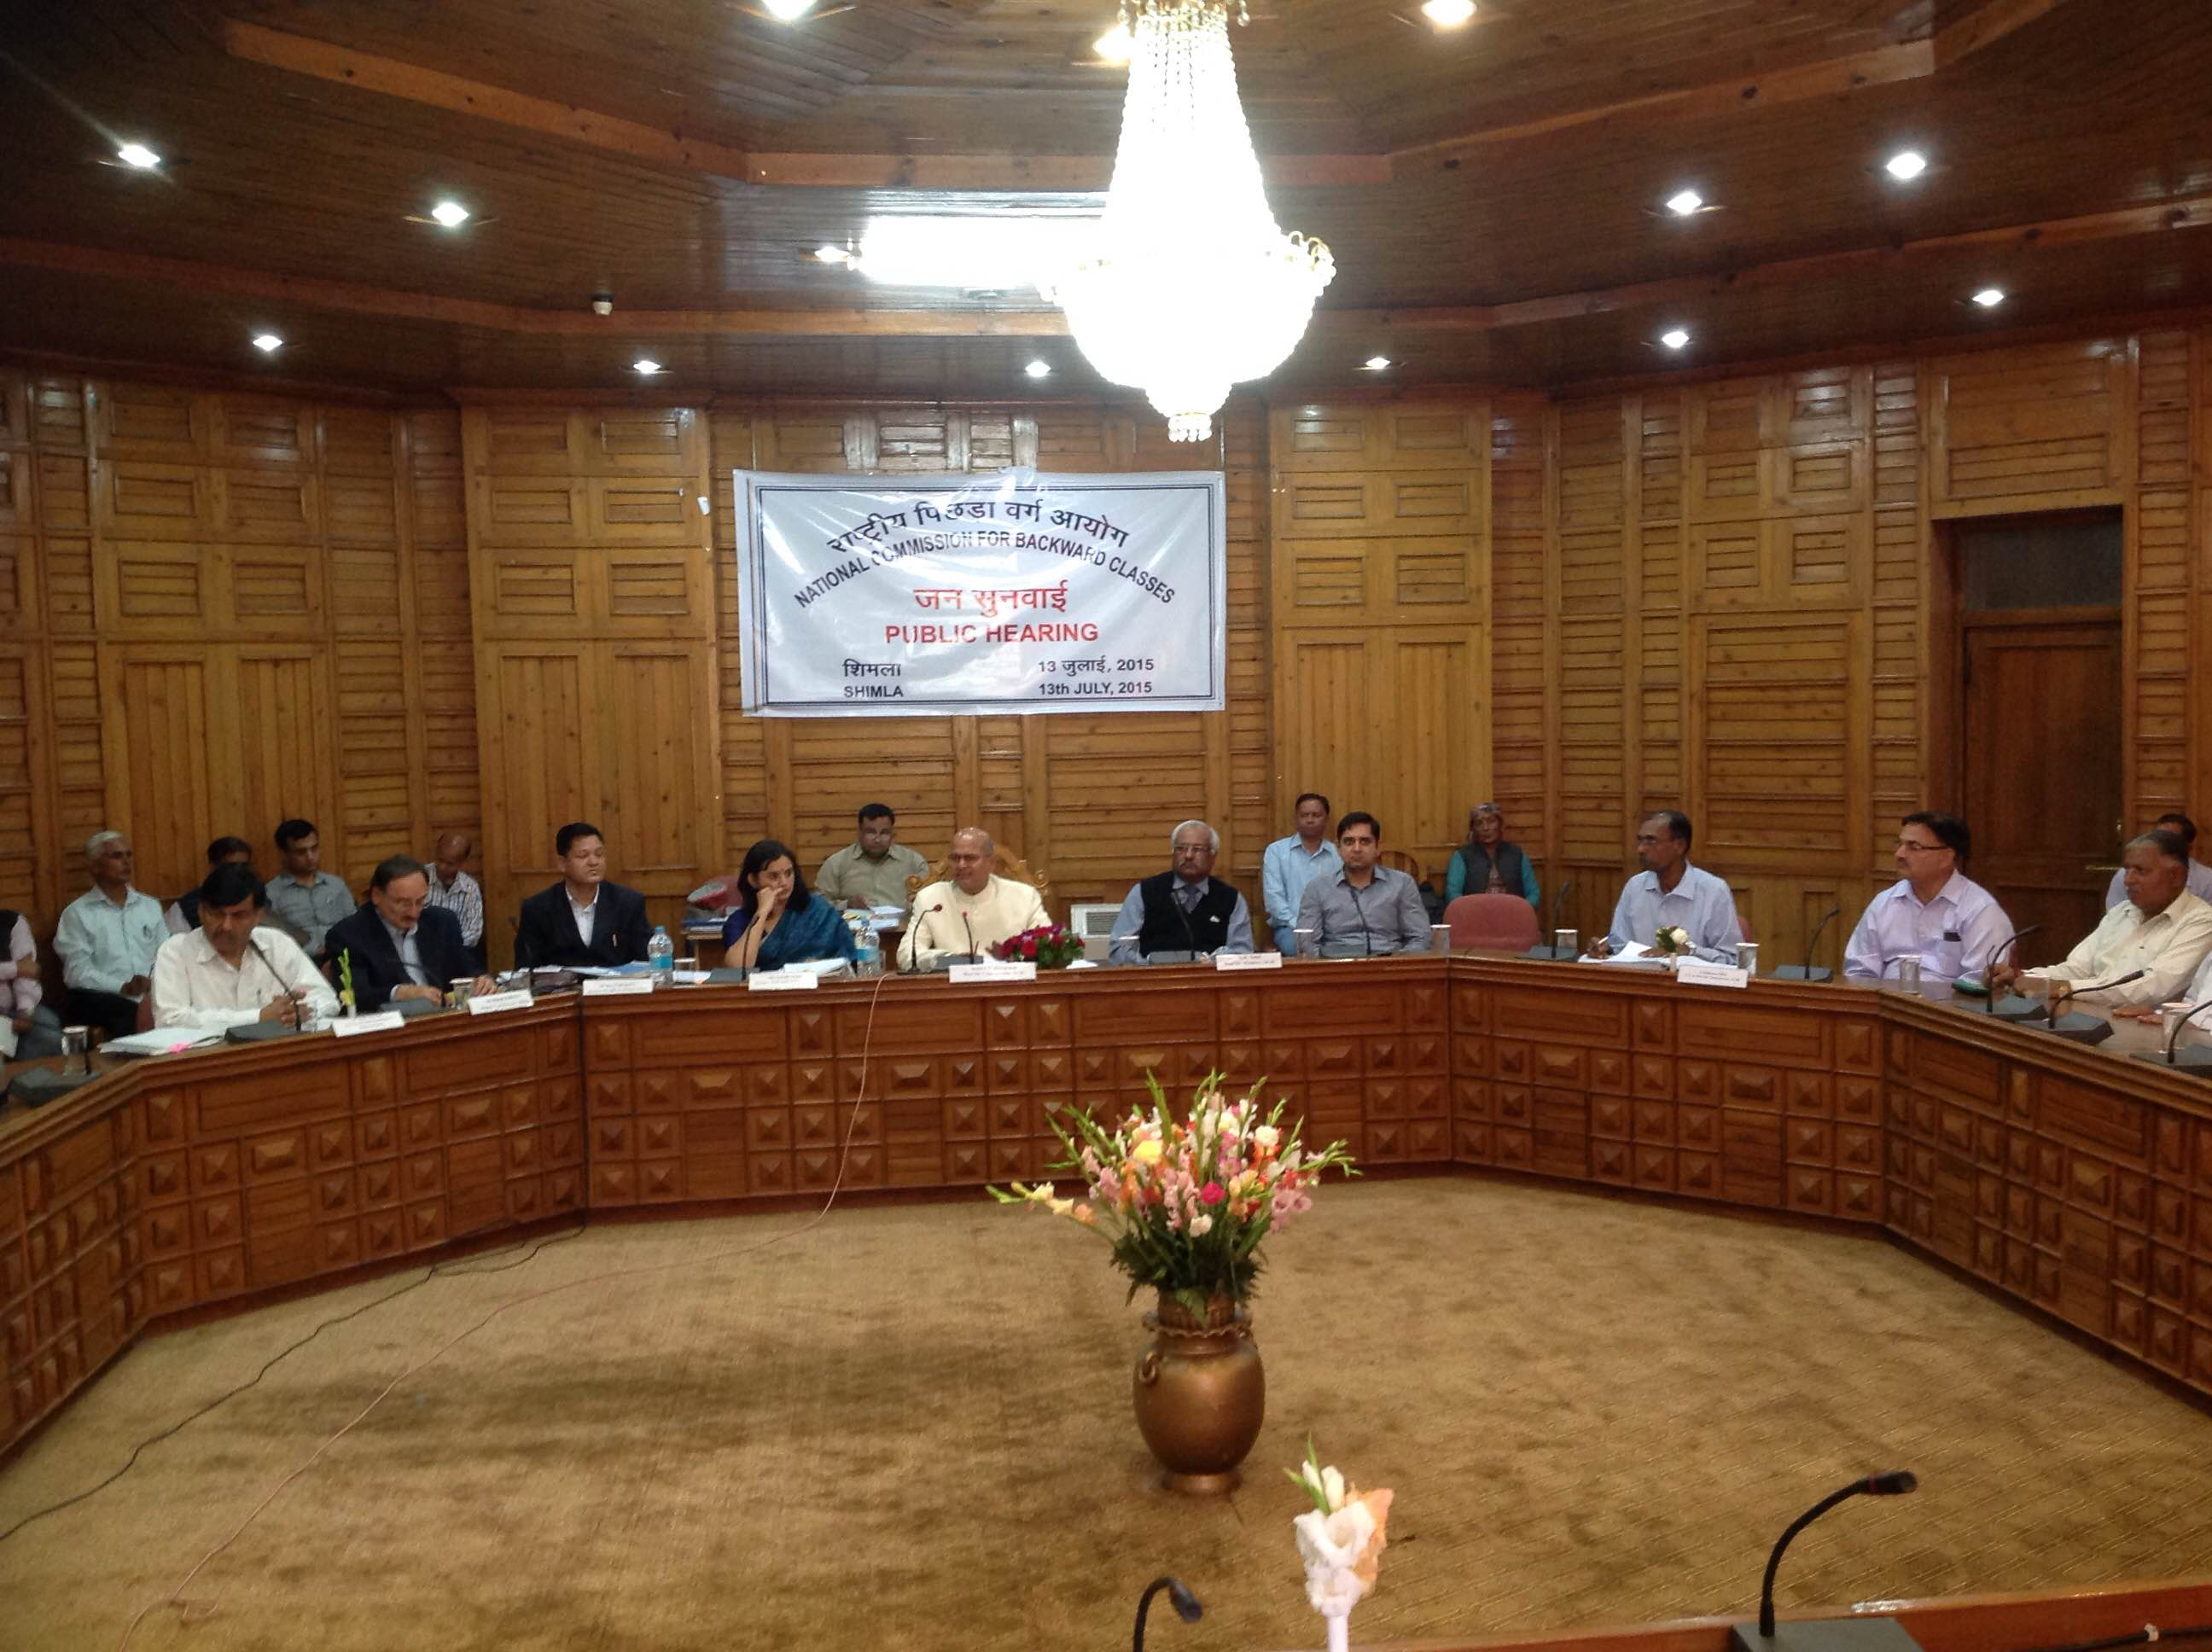 Public Hearing held at Himachal Pradesh  from 13th, 15th & 17th July, 2015